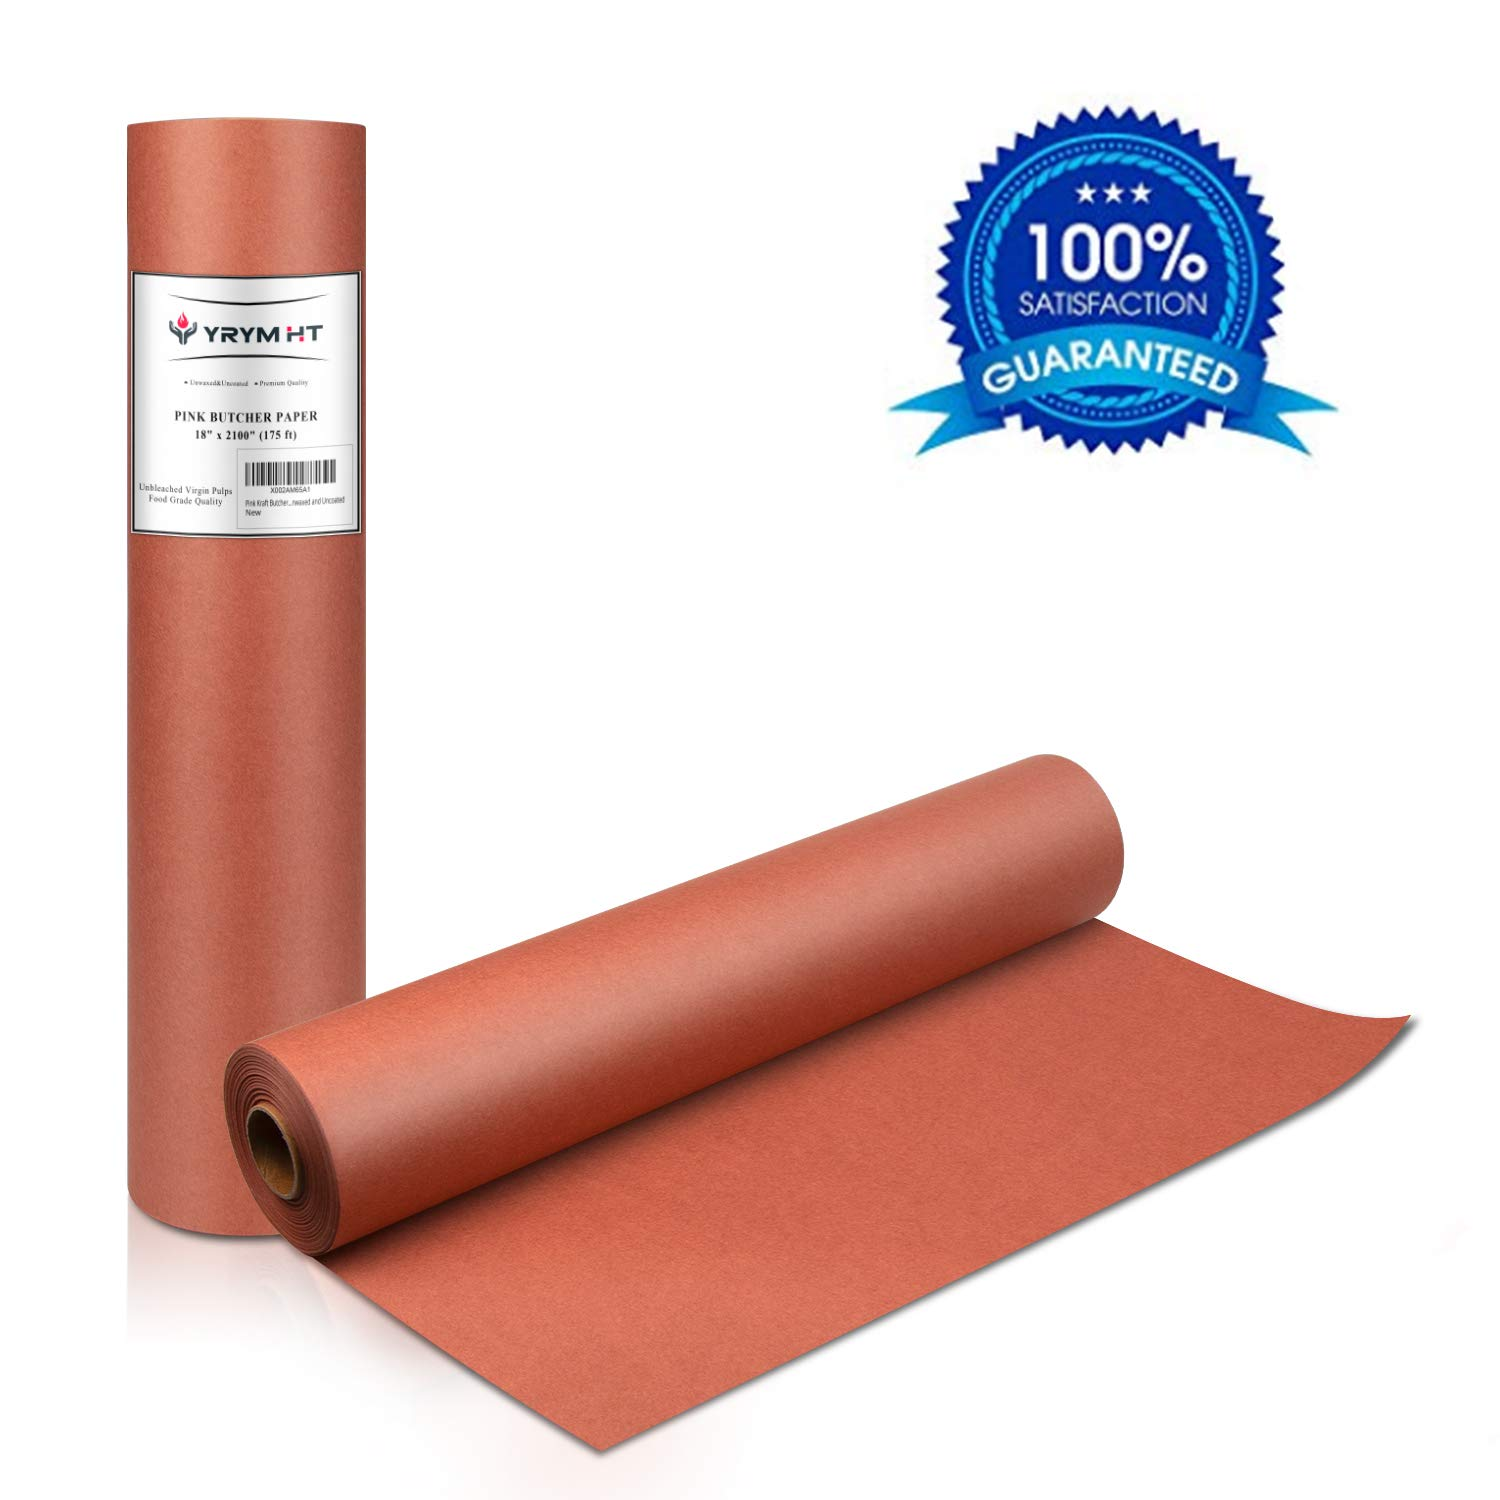 Peach Butcher Paper Roll 18 by 200 Feet Pink Butcher Paper for Smoking Meat